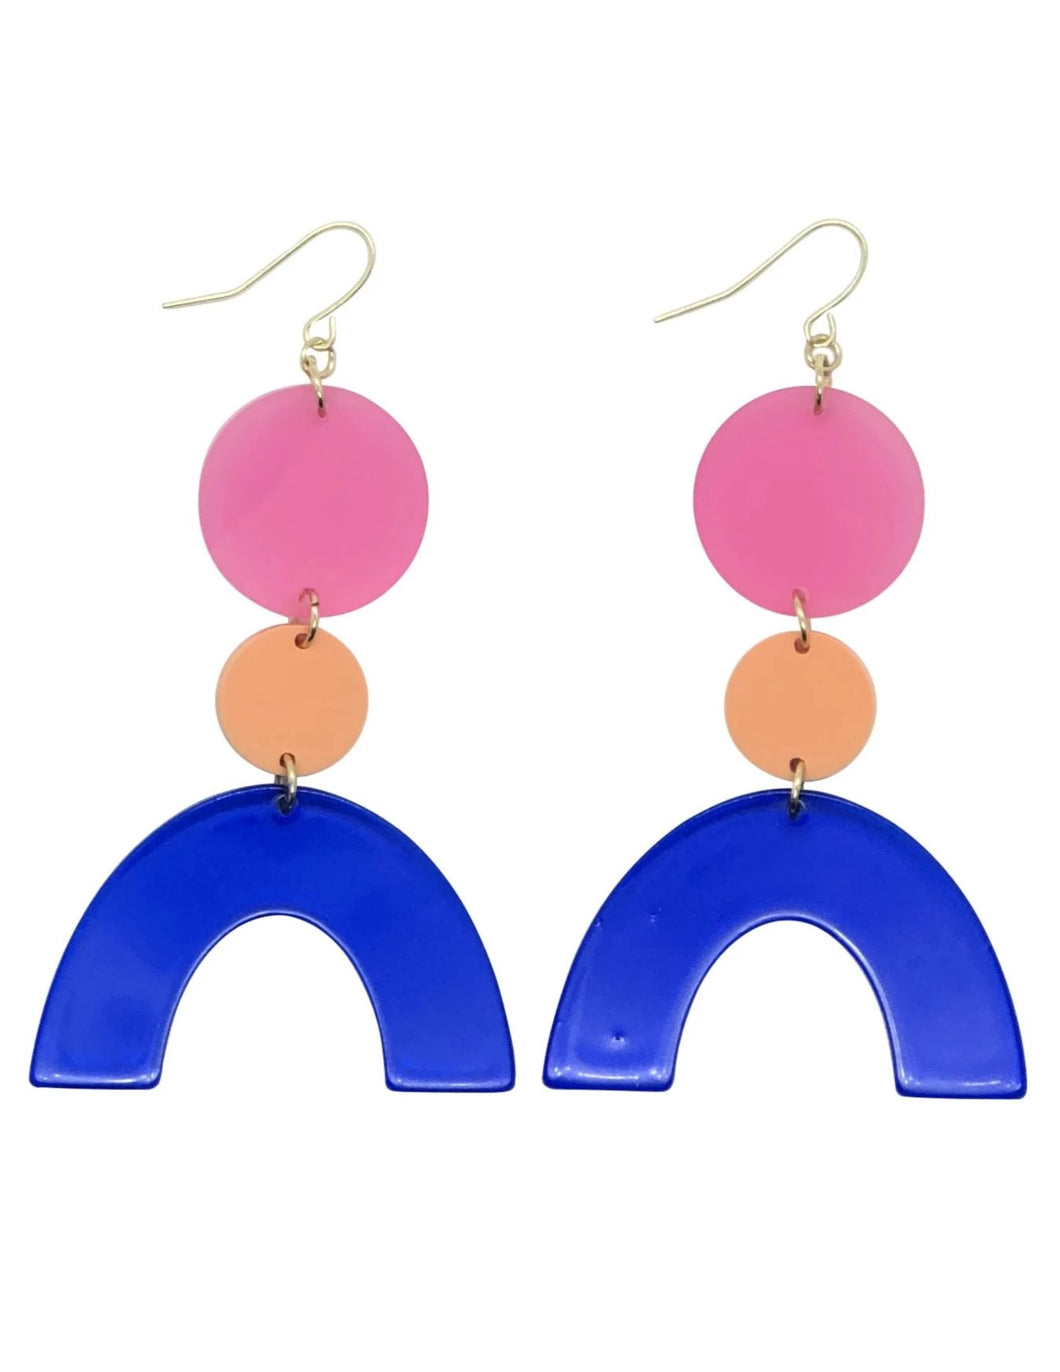 Rad Rainbow Emerald, Royal Blue geometric acrylic earrings are fun and will make you feel happy and cheerful, while adding the perfect pop of color to your wardrobe! Our colorful, eighties inspired earrings are handmade and designed with love in Las Vegas and like totally, make a statement!